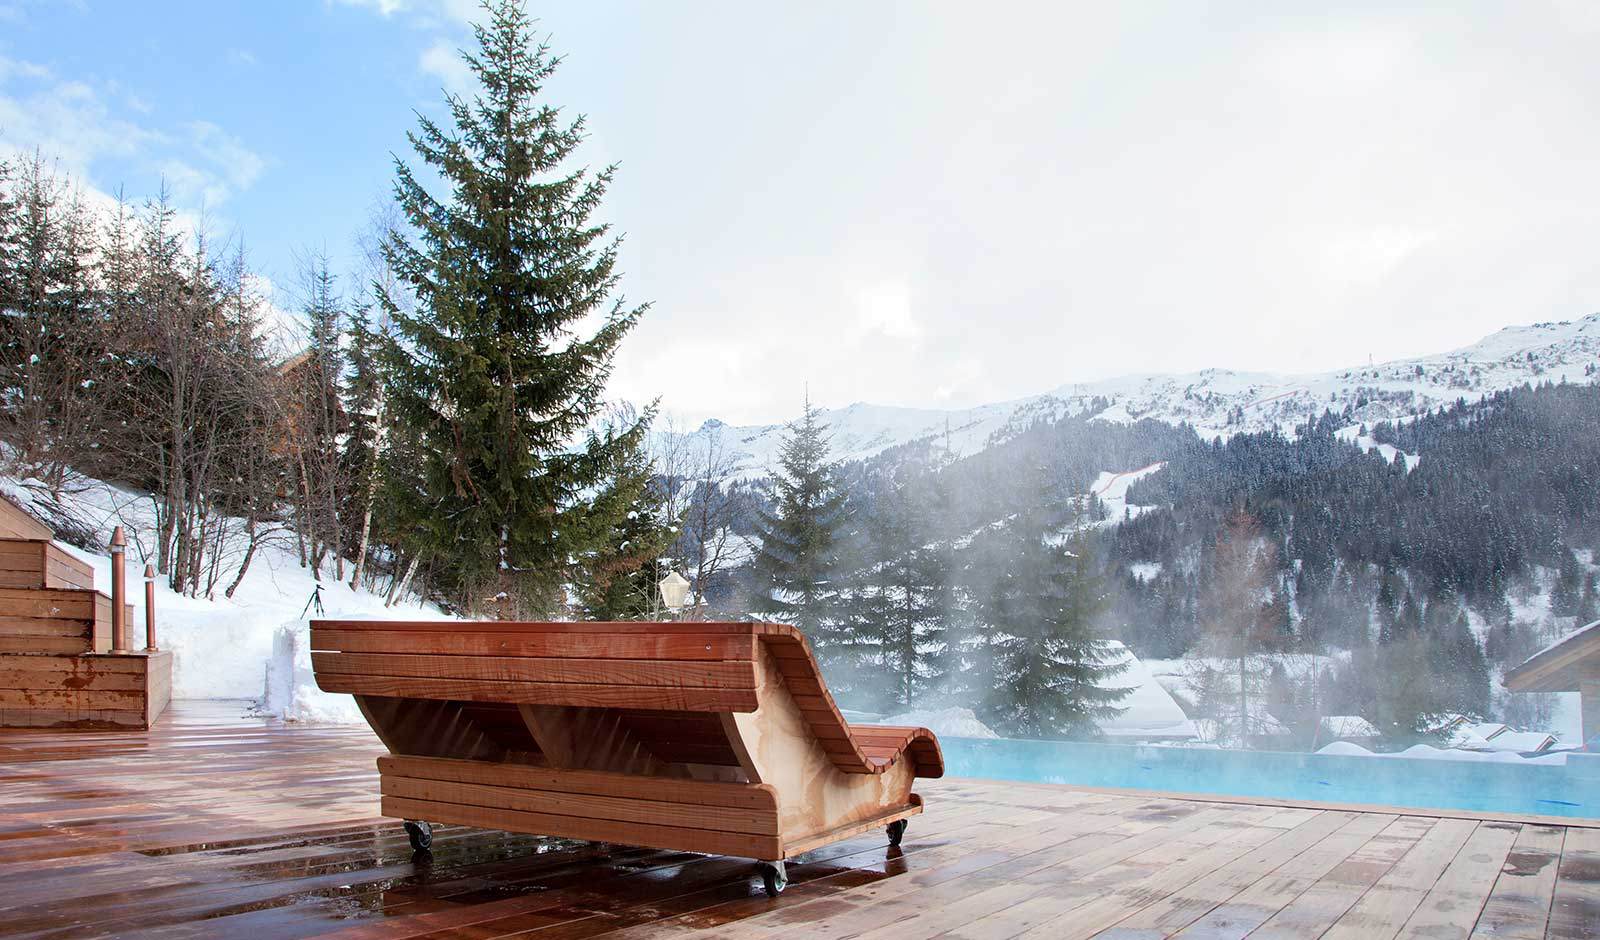 chalet-mont-tremblant-17-atelier-crea-and-co-architecte-design-project-manager-meribel-savoie